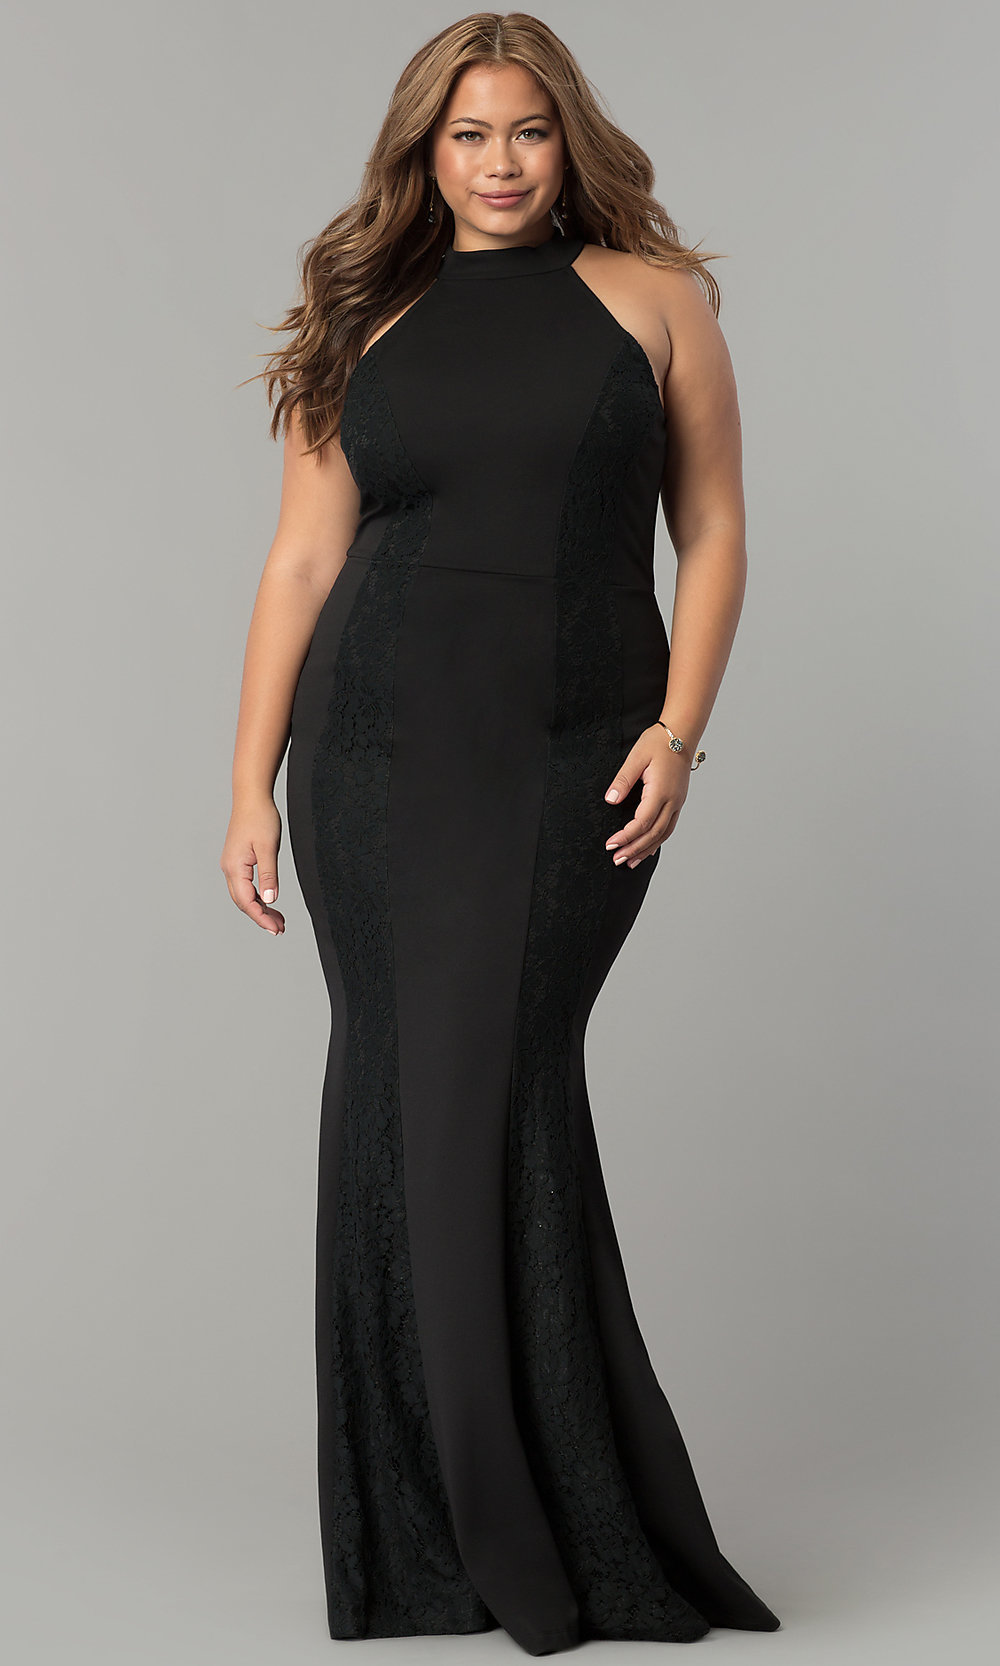 Plus-Size Black Formal Mermaid Dress - PromGirl